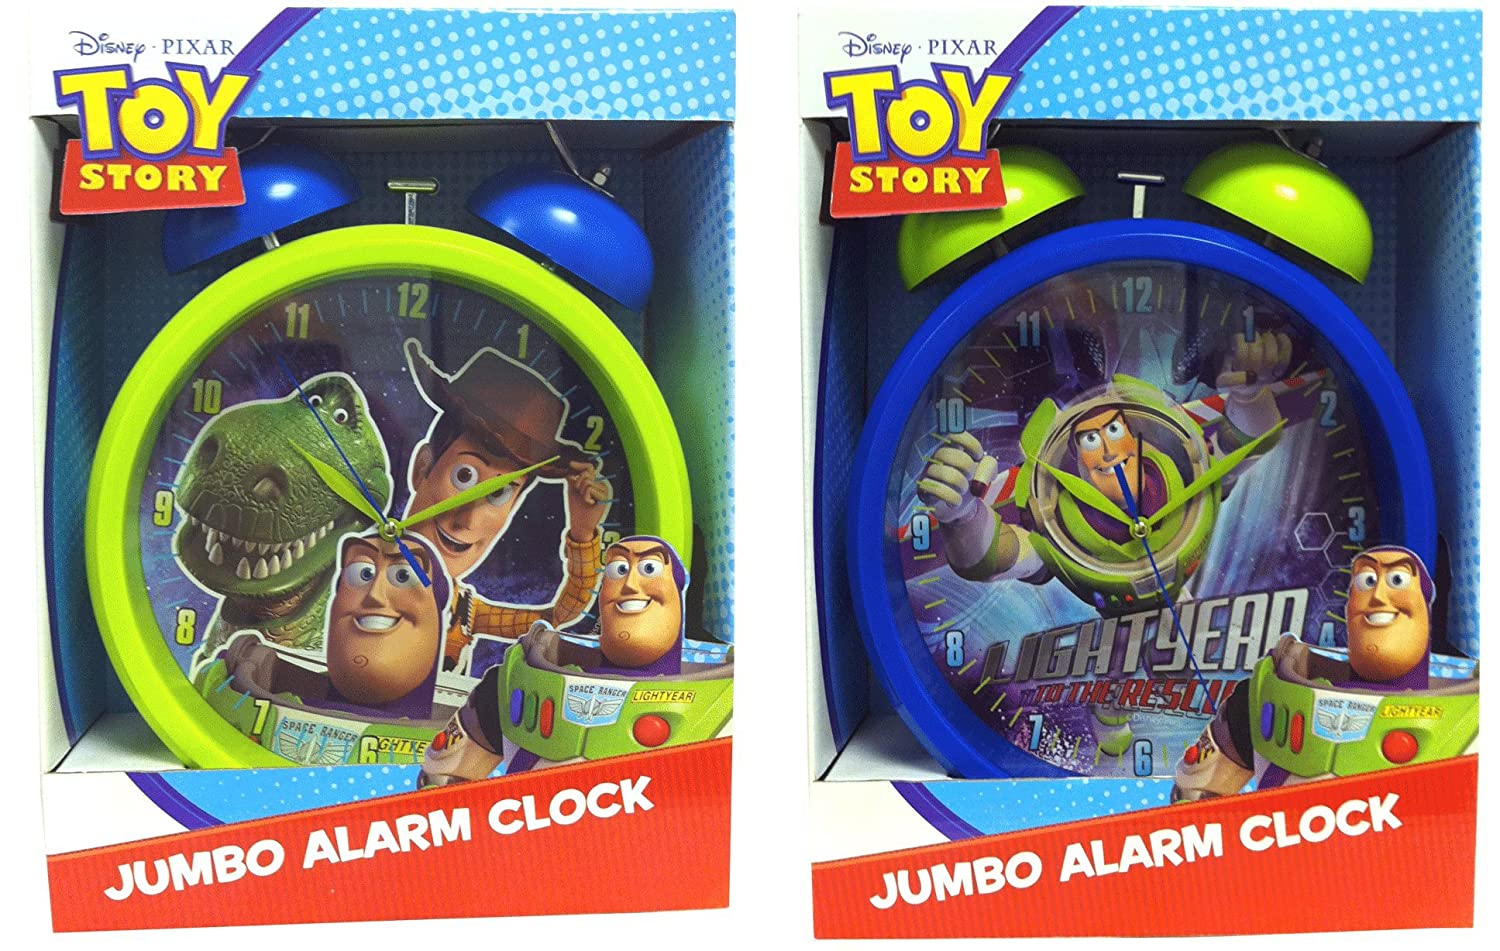 Toy Story Jumbo Alarm Clock - Battery Operated - Choice of 2 Designs Universal